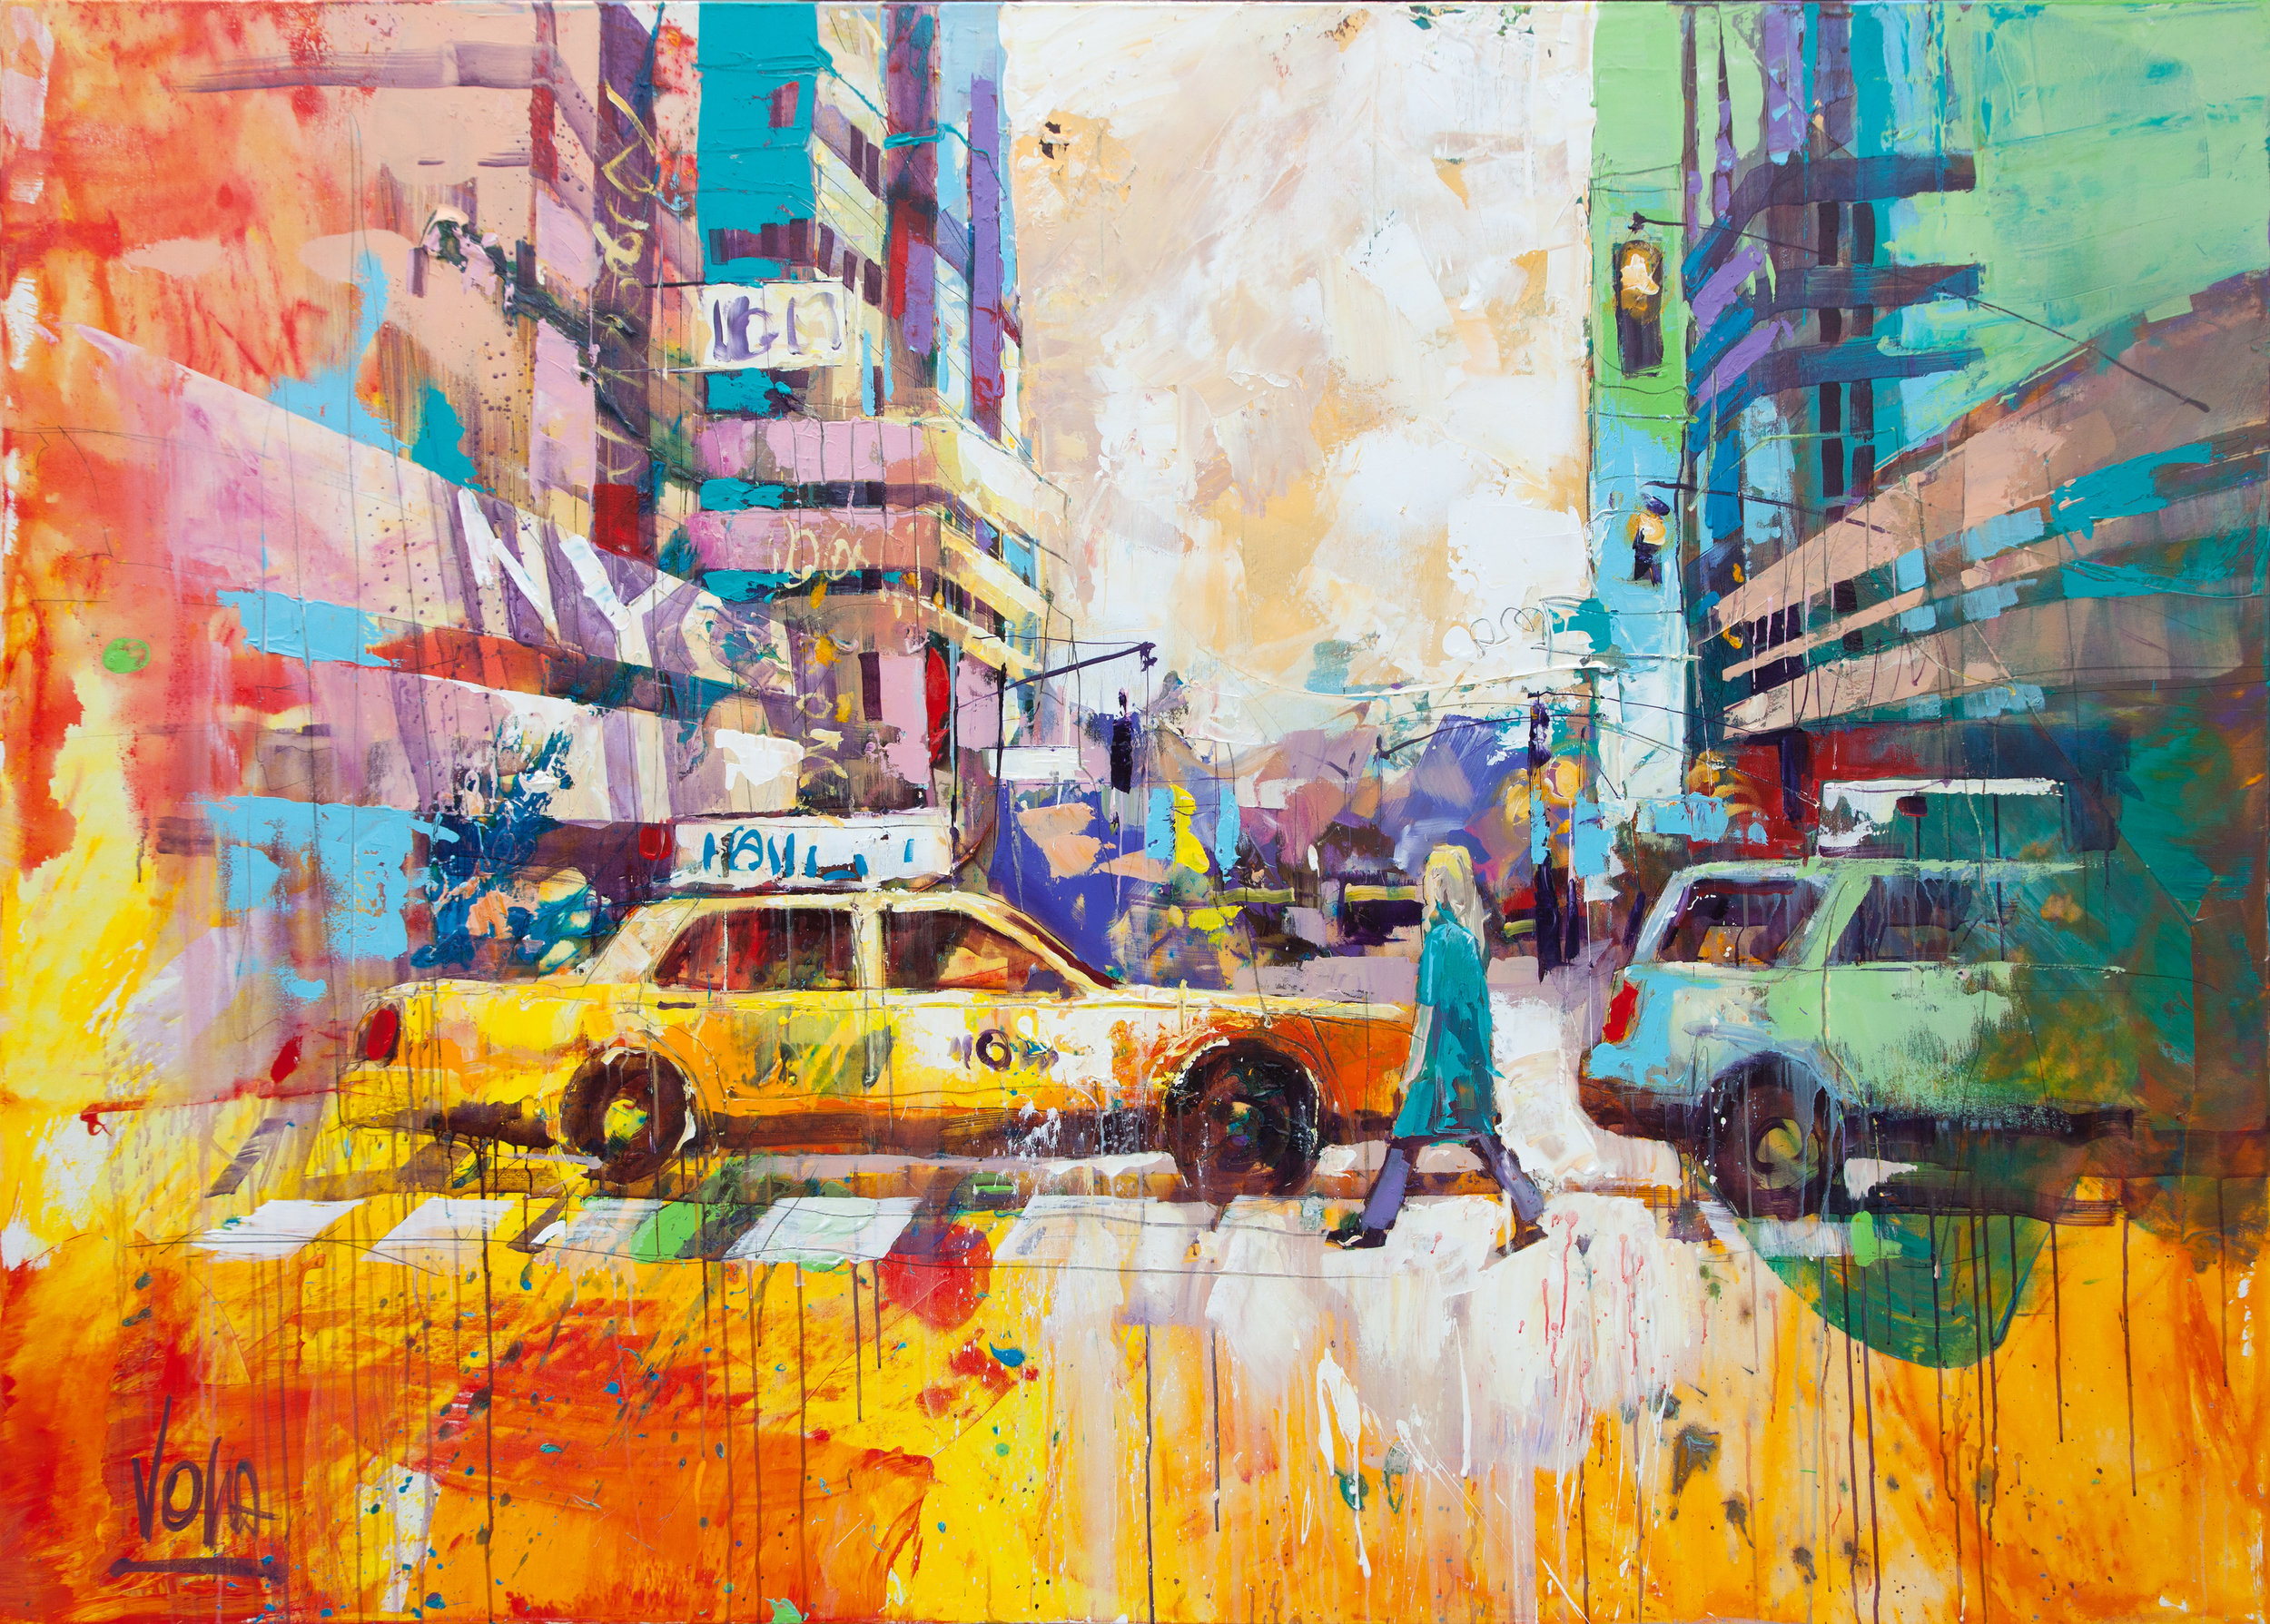 New York City, 150x210 cm/59,1x82,7 inch, Acrylic on Canvas